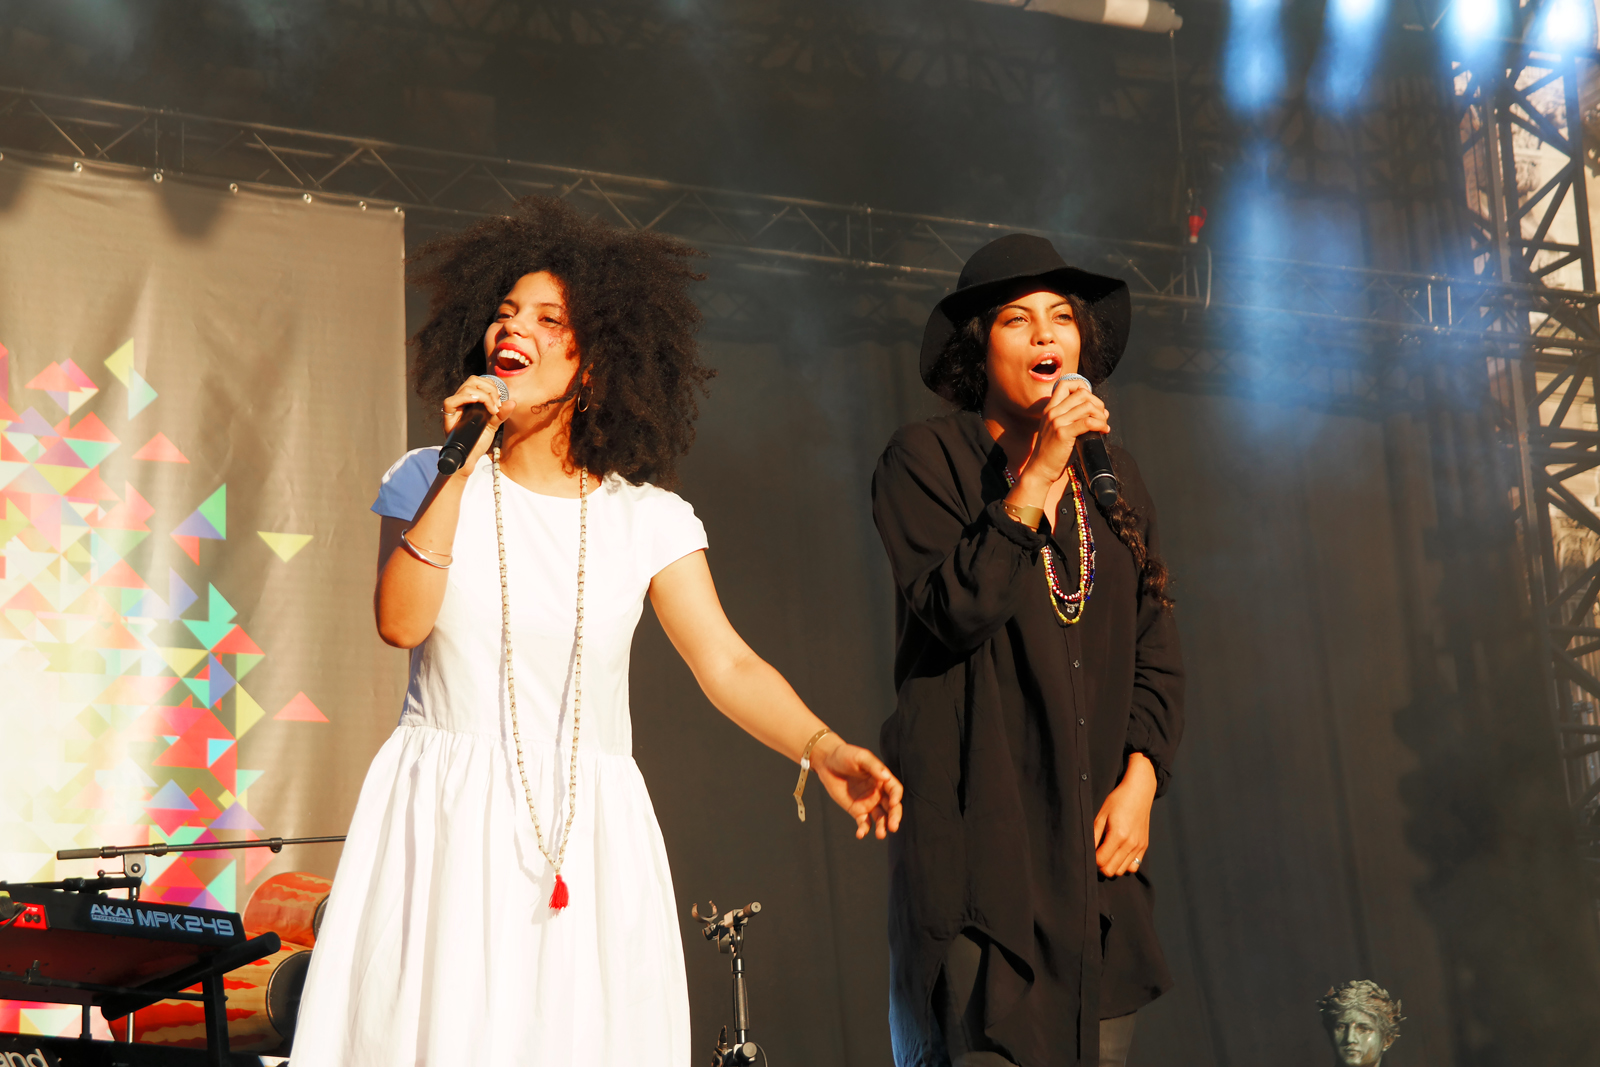 Ibeyi-live-concert-festival-fnaclive-2015-paris-Lisa-Kaindé-et-Naomi-Diaz-musique-tournée-stage-photo-scène-by-united-states-of-paris-blog